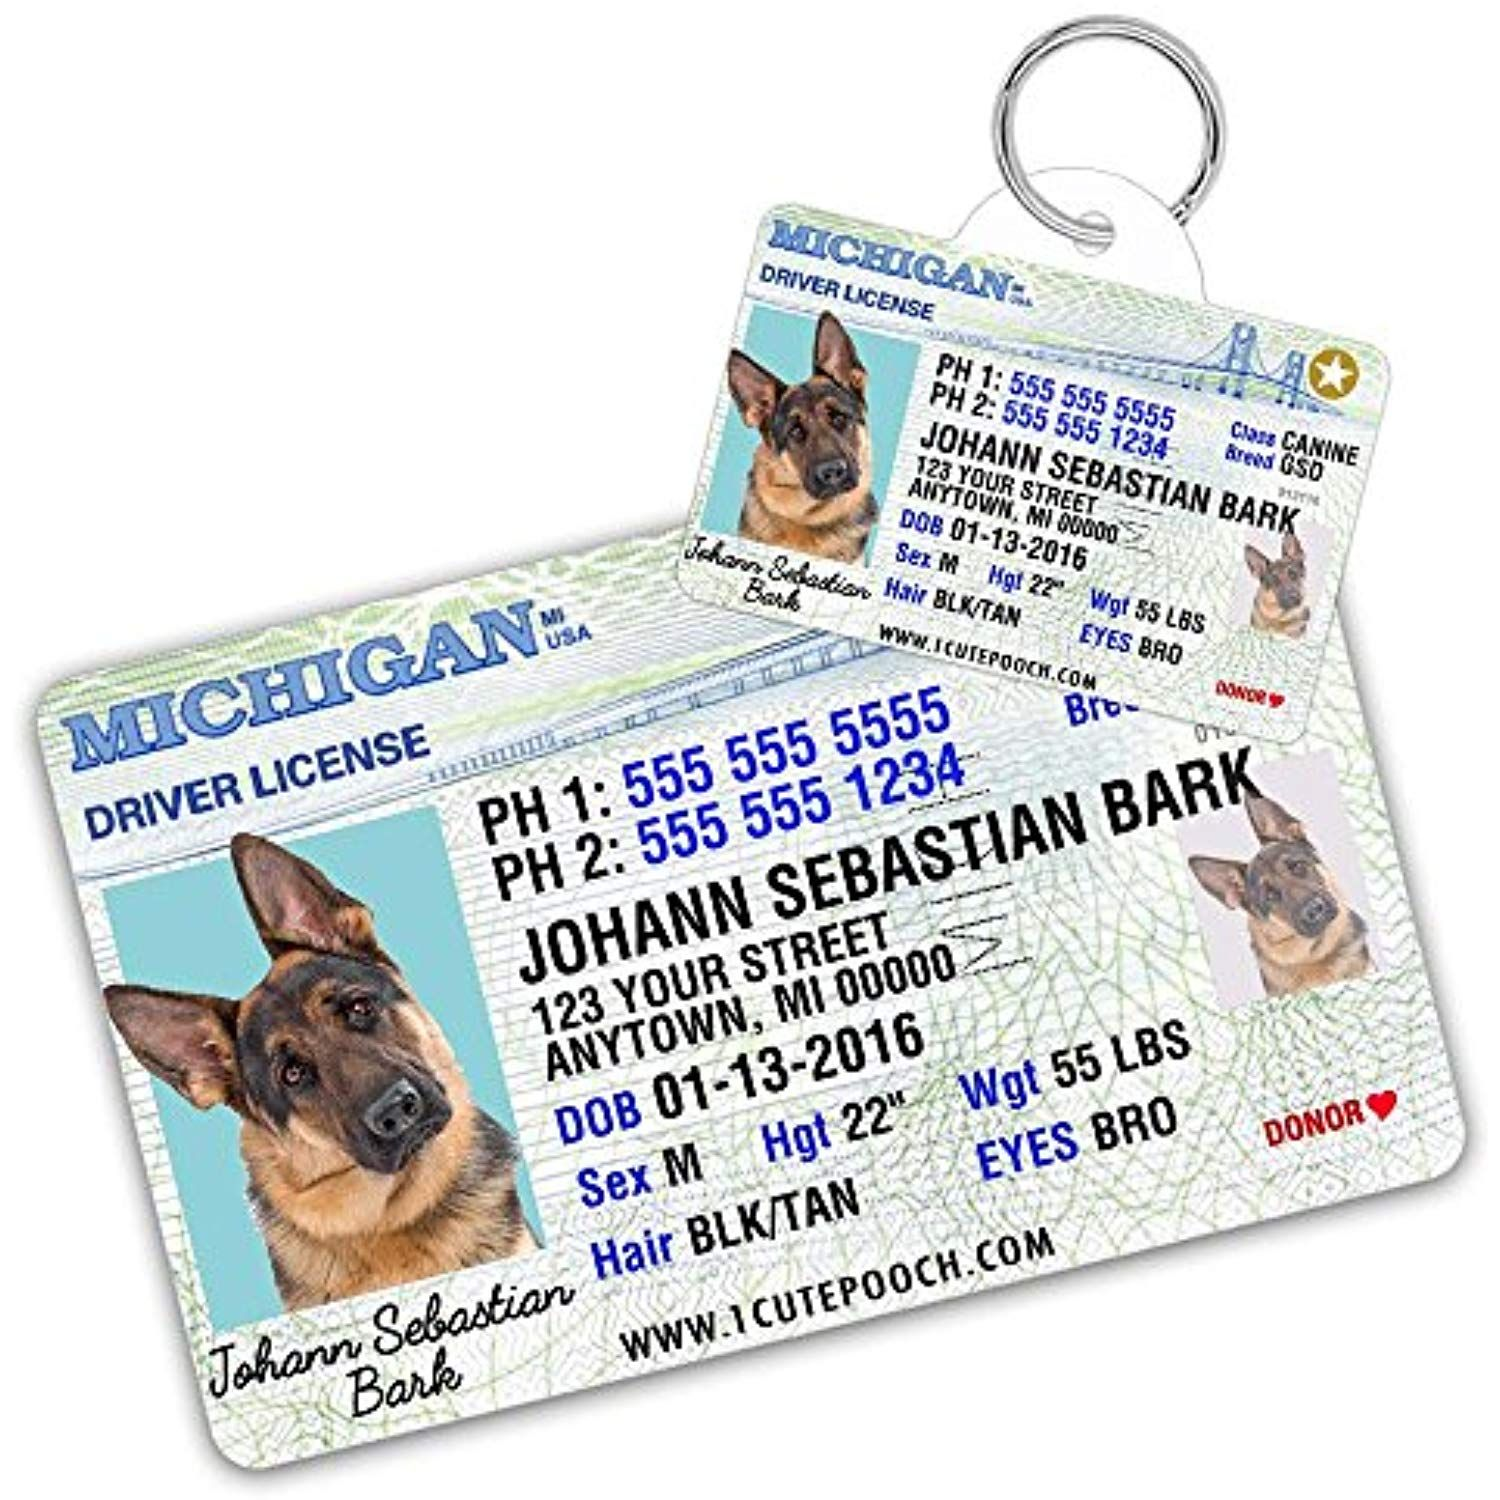 Michigan Driver License Custom Dog Tag For Pets And Wallet Card